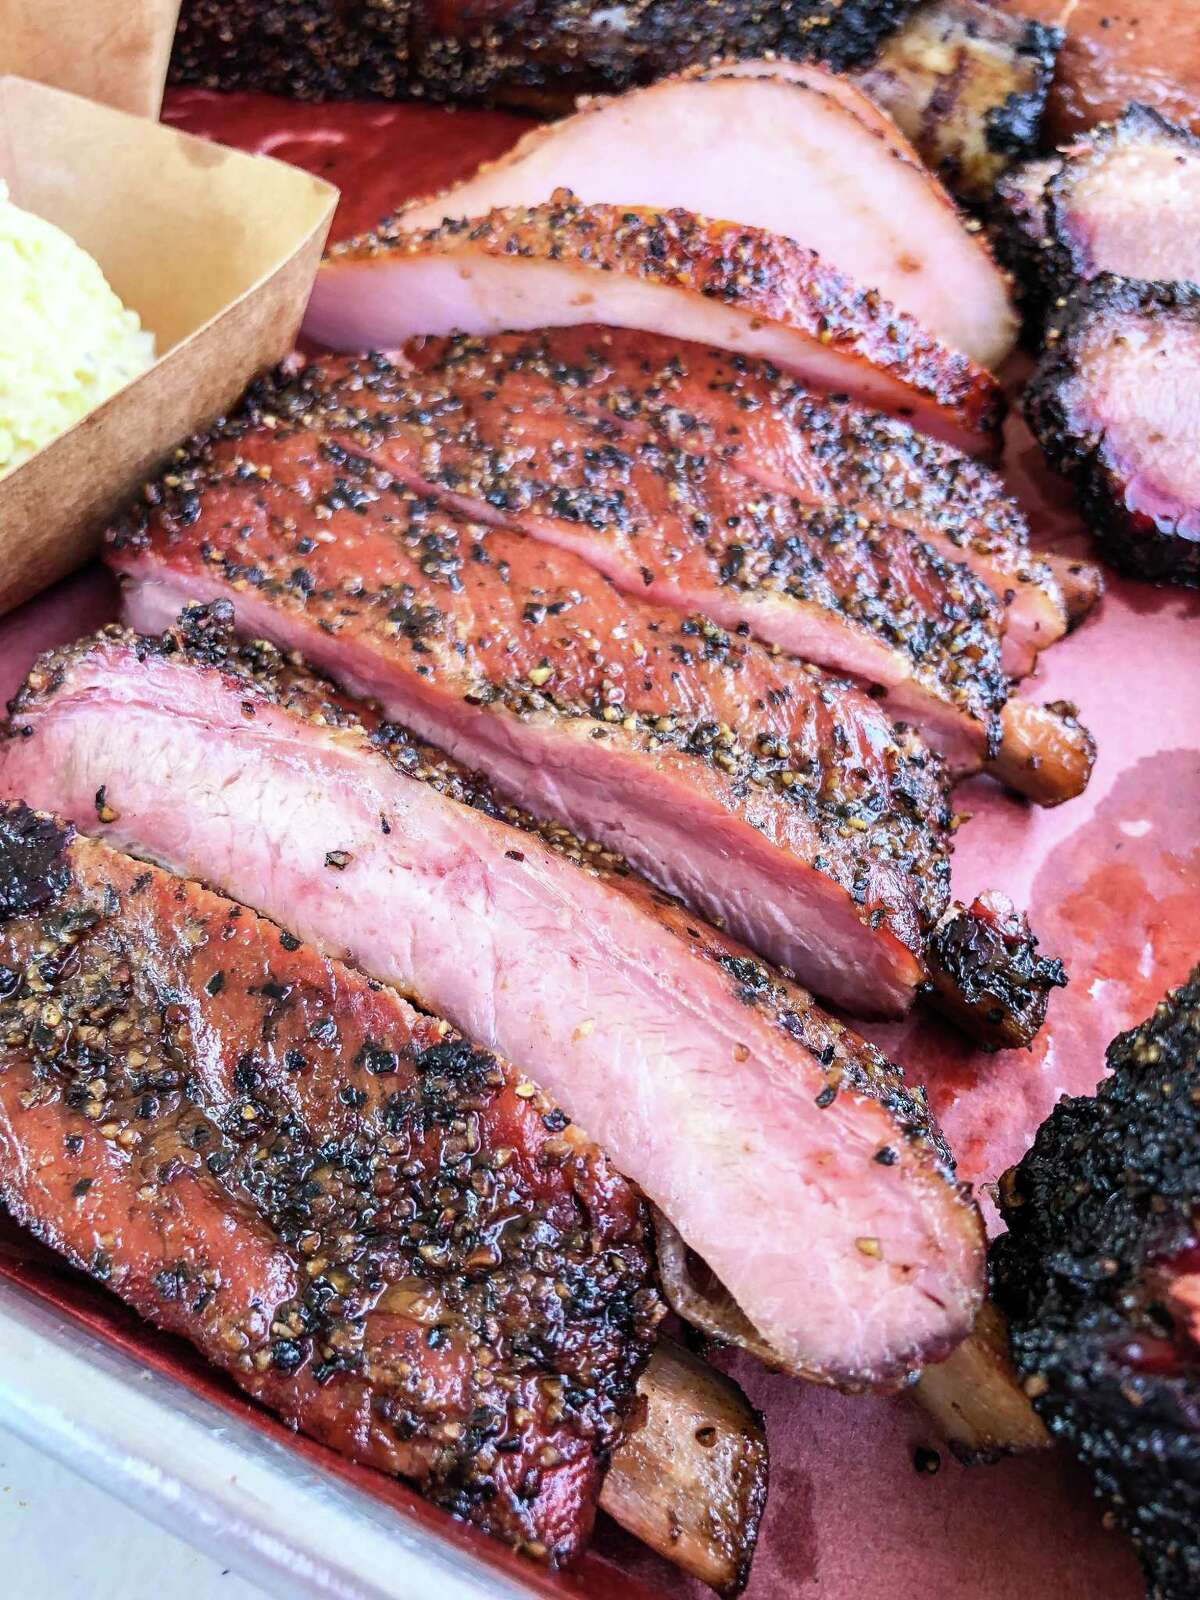 Pork ribs at Reveille Barbecue Co.